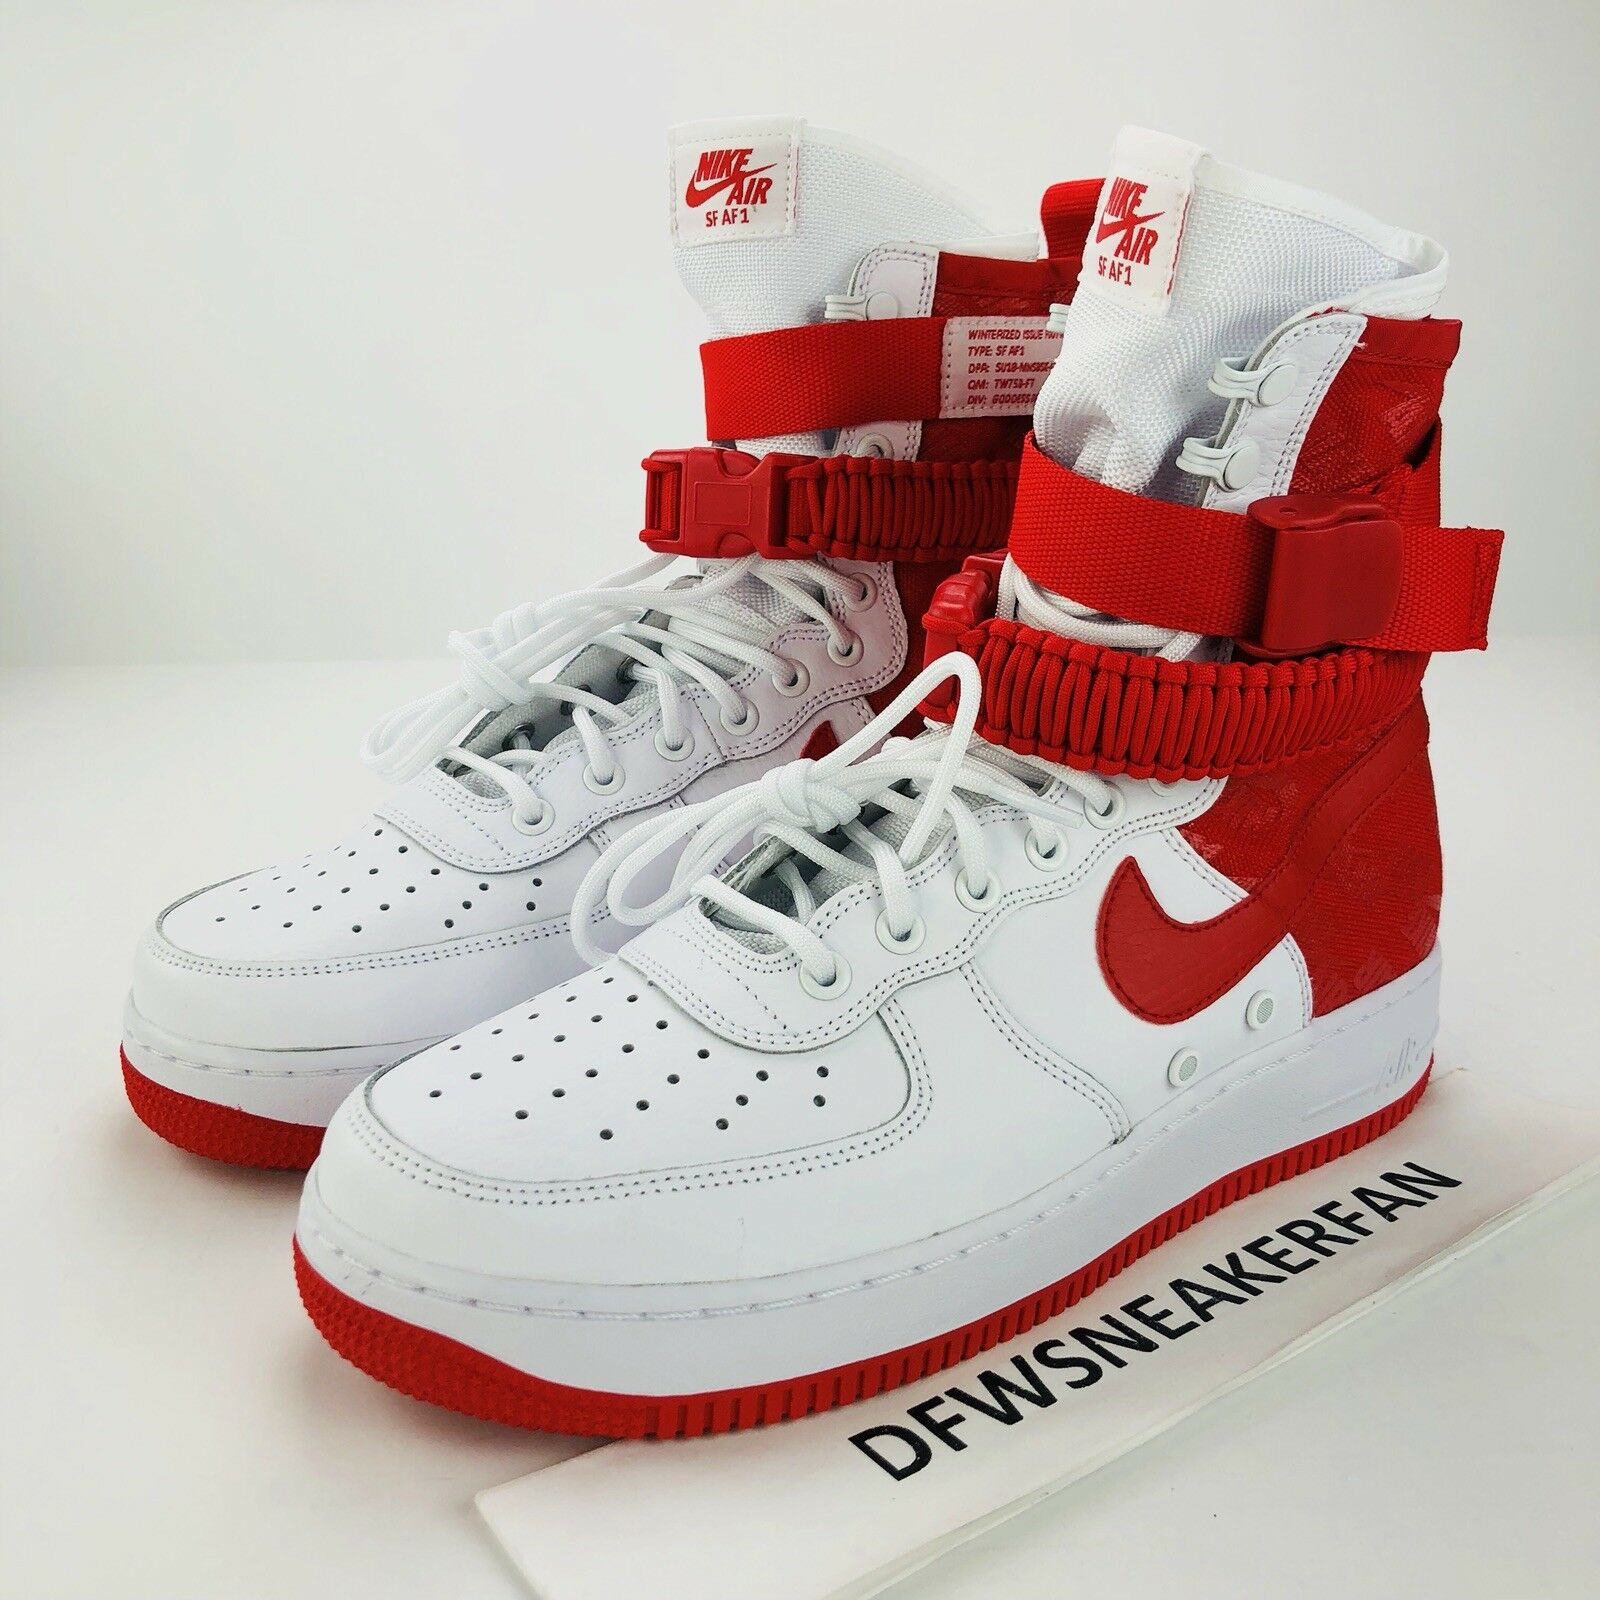 Nike Air Force 1 Special Forces SF Men's Size 10 White Red Sneakers AR1955-100